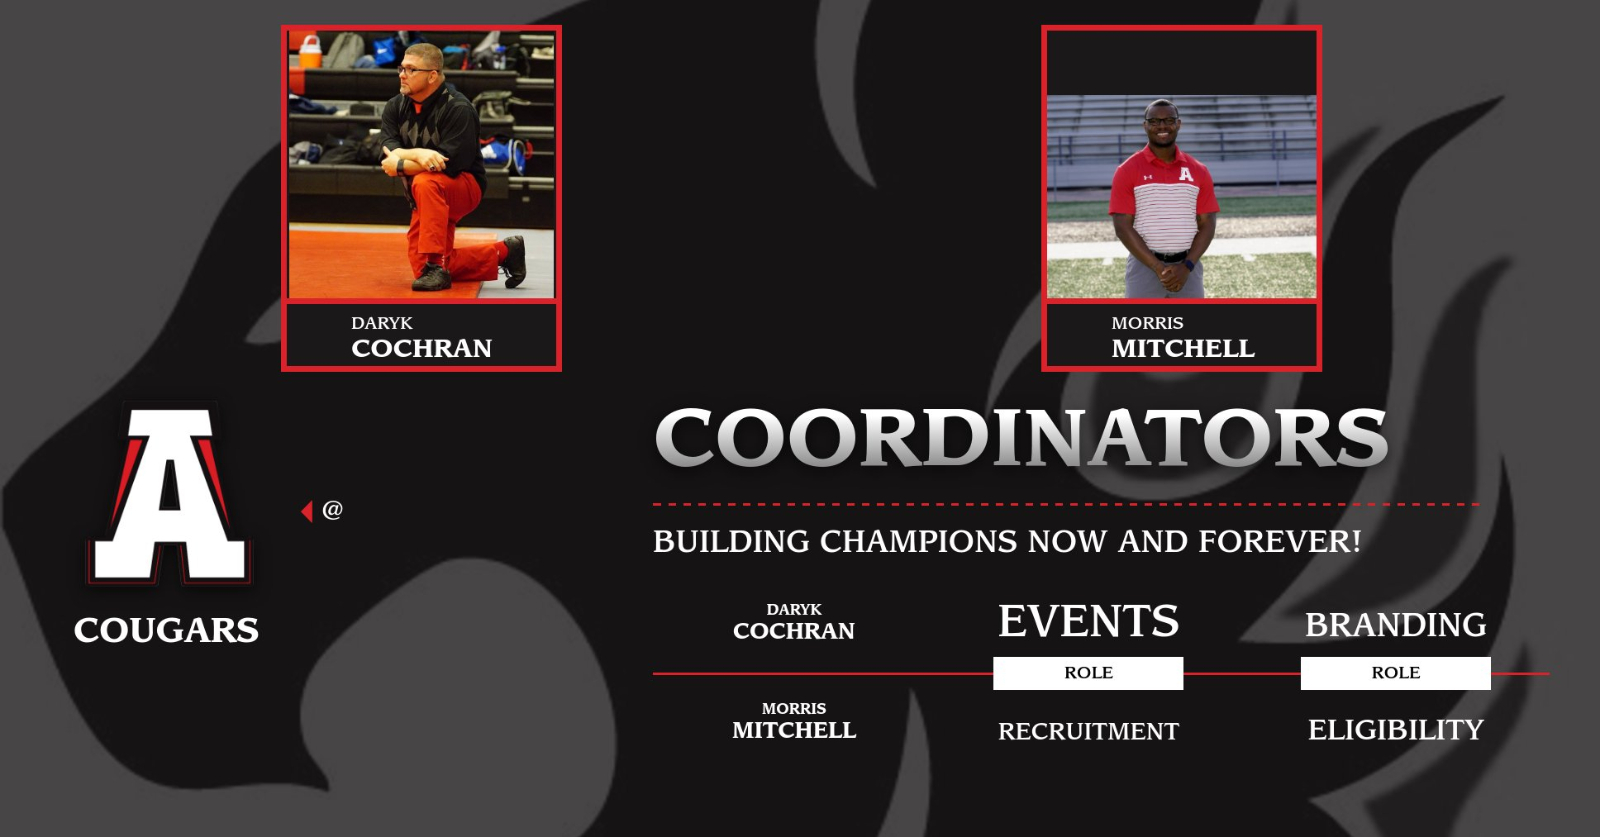 Introducing the Athletic Coordinators